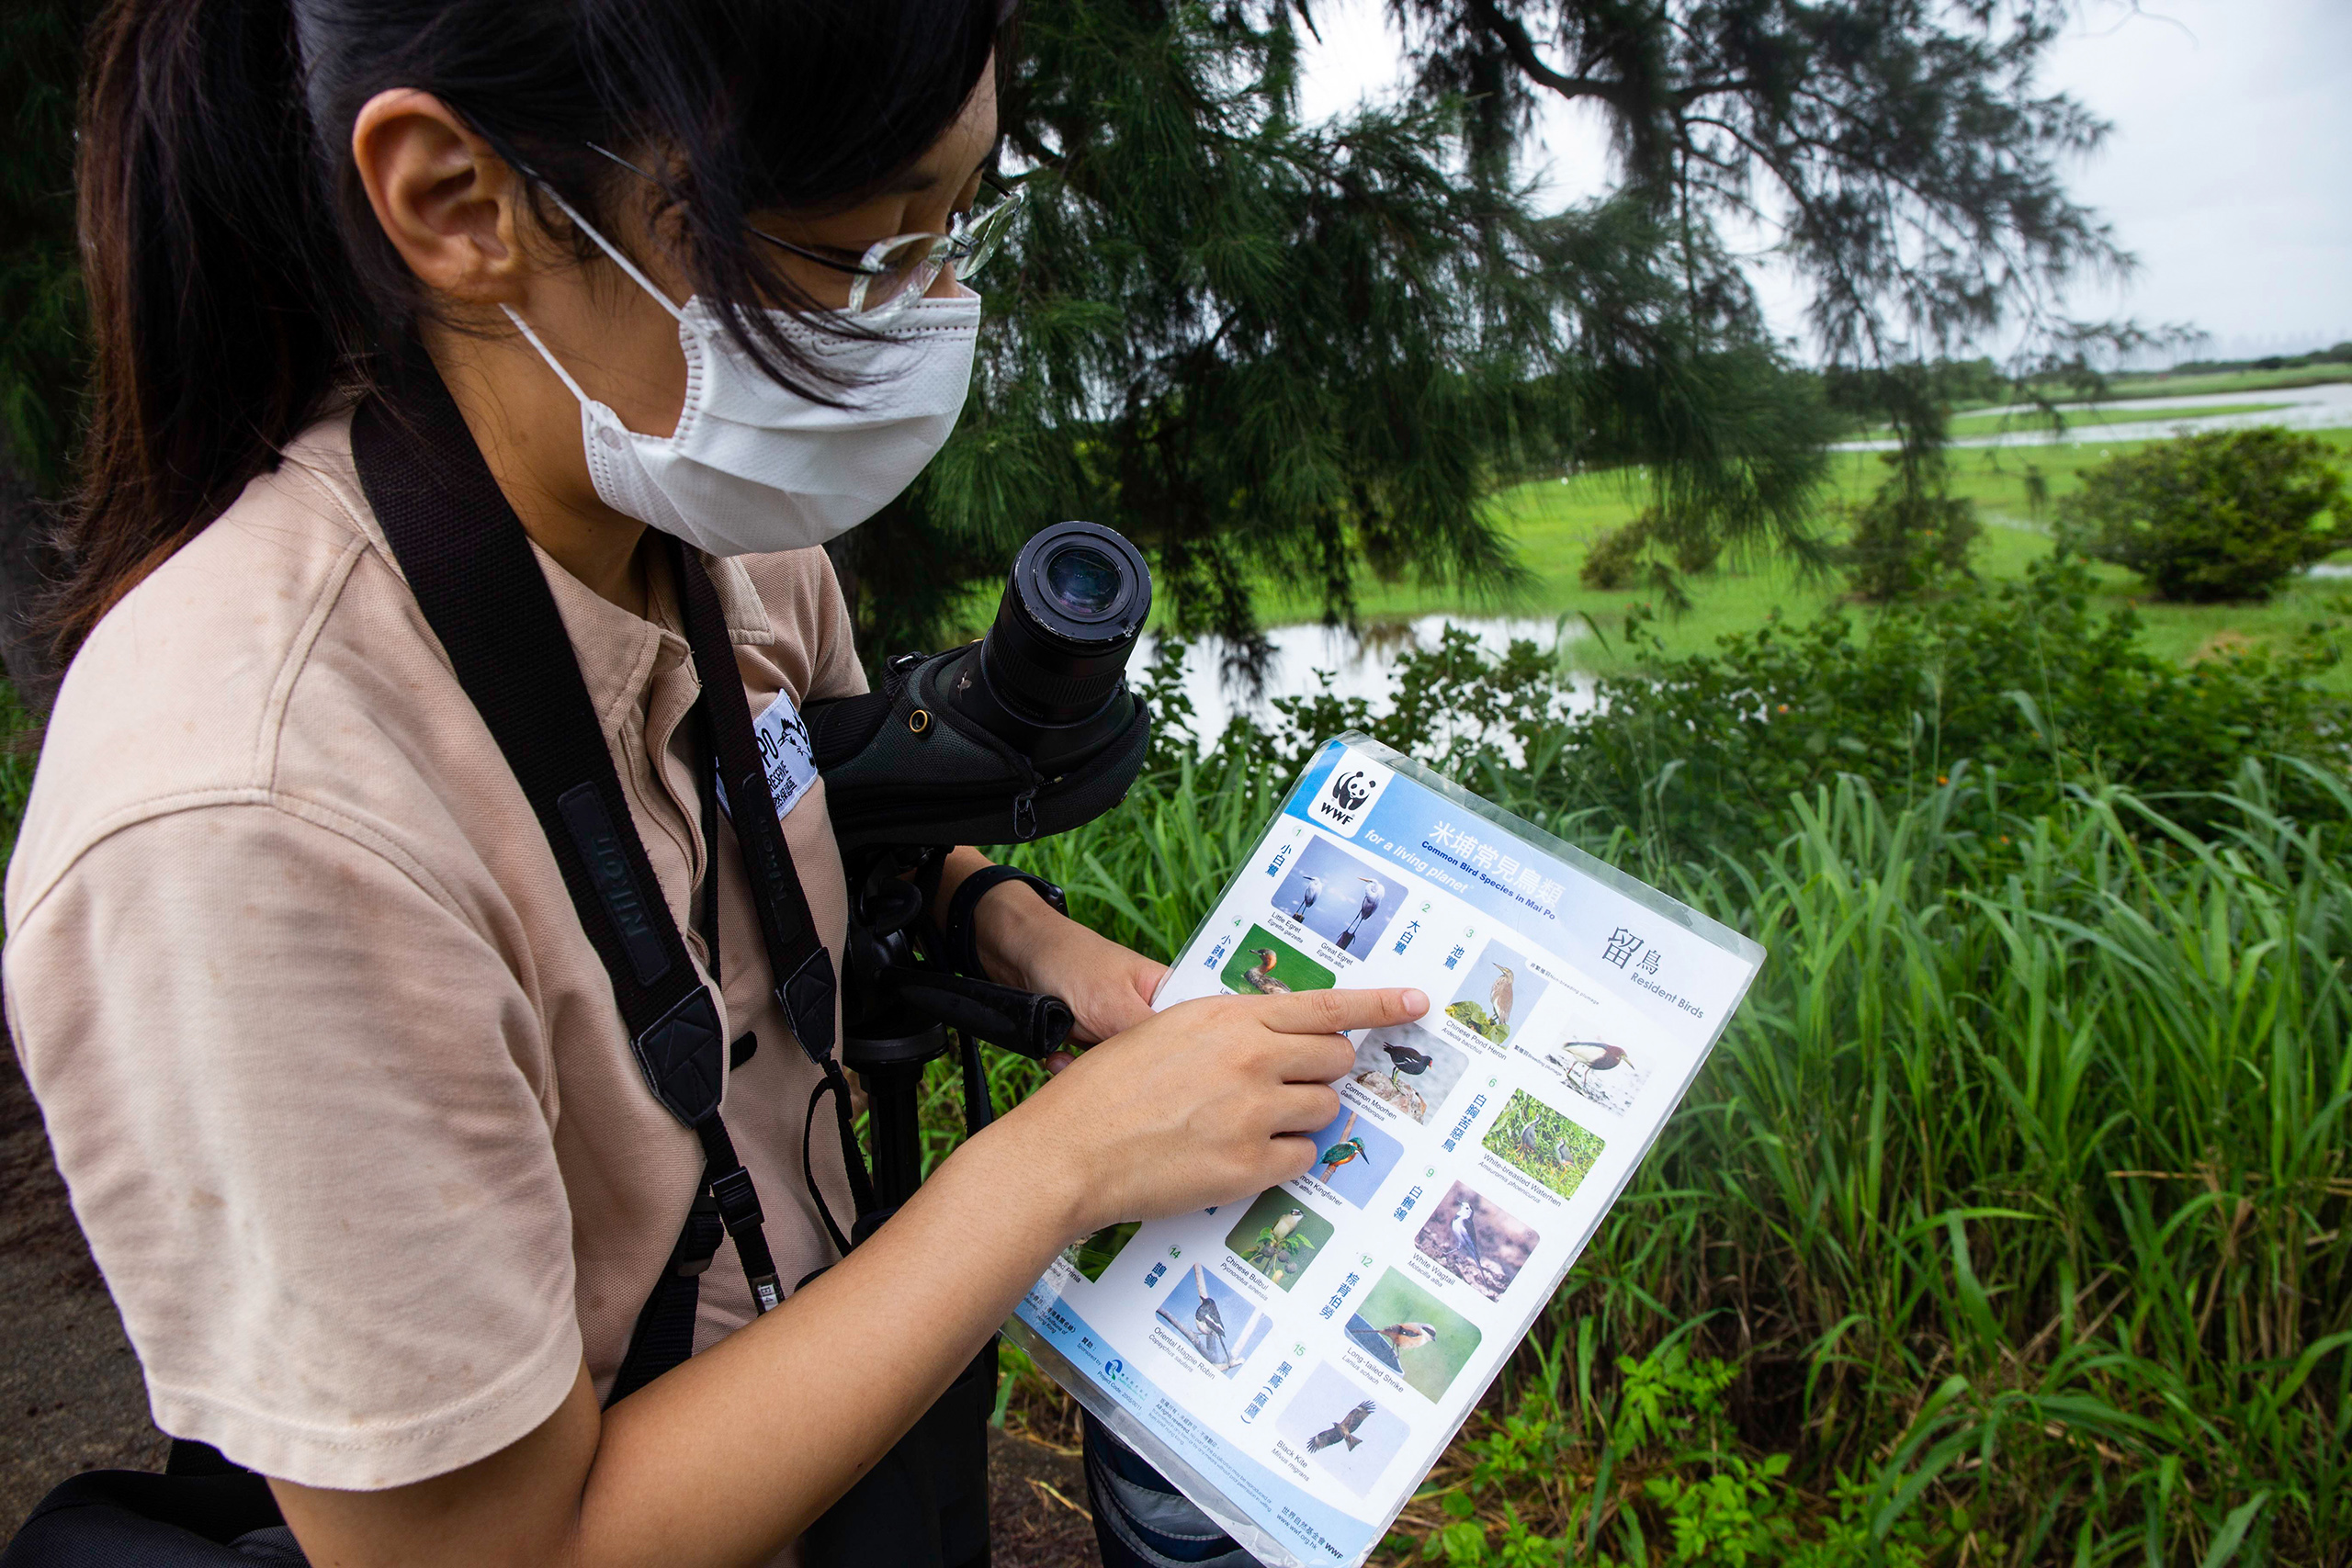 WWF staff member Cindy Chau identifies a bird spotted in the distance on the Mai Po reserve, home to Hong Kong's largest remaining patch of mangroves. This expanse of marshes and mudflats at the head of Deep Bay supports a wide variety of birds, as well as other animals. The winter months are especially busy – an estimated 60,000 migratory birds spend the season here. (Image: Katherine Cheng / China Dialogue)